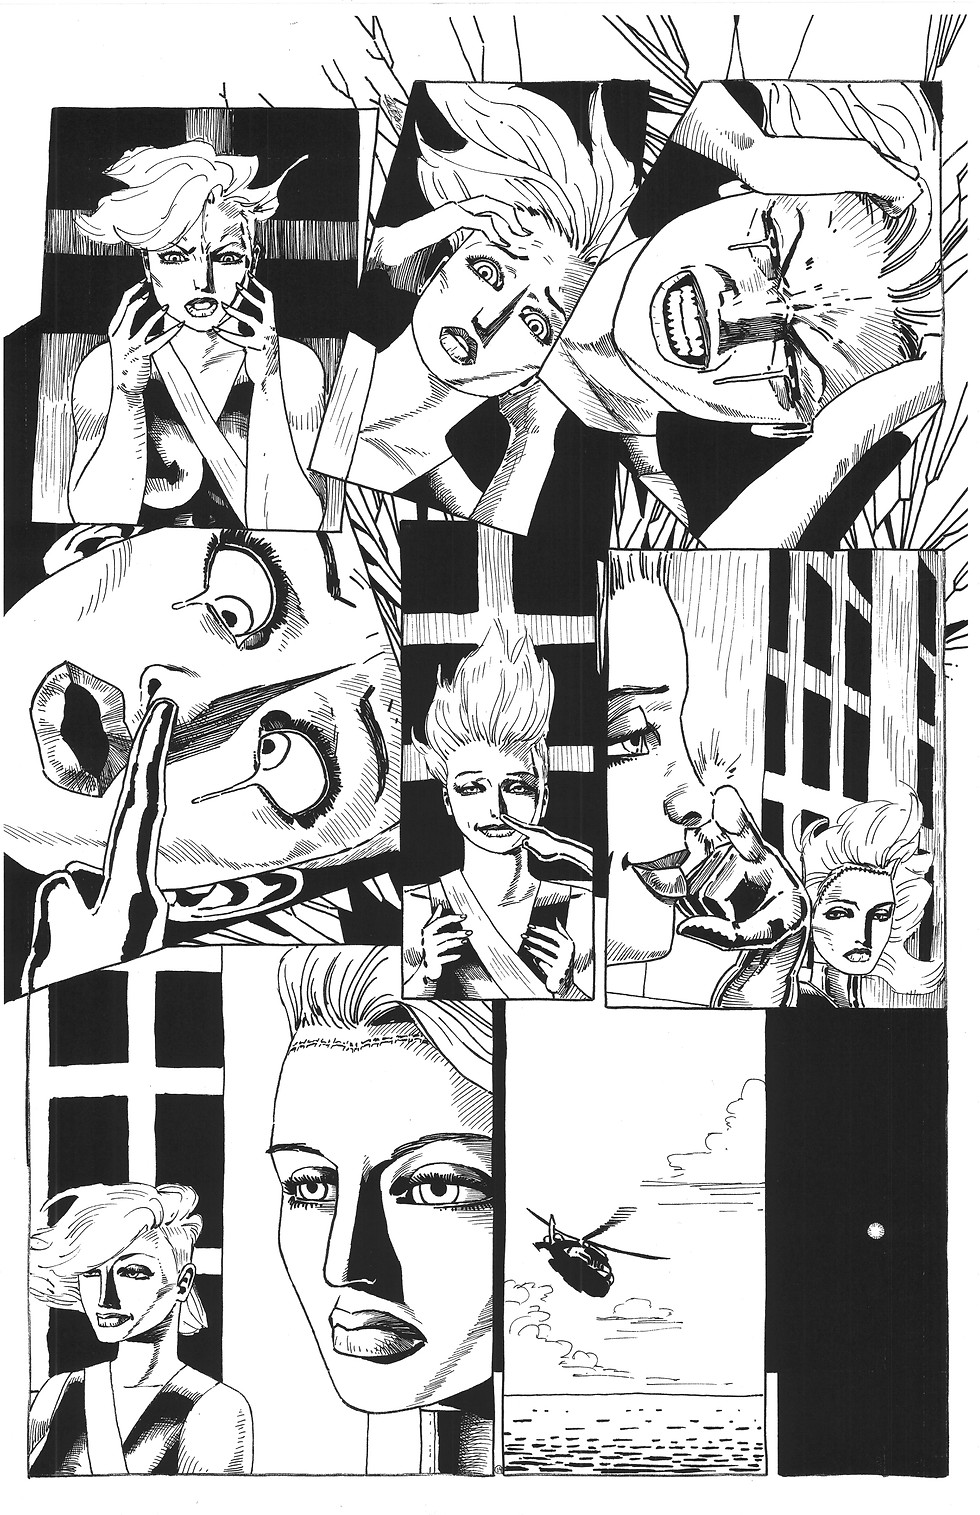 Live Wire Issue 1 (pages 14-14).jpg